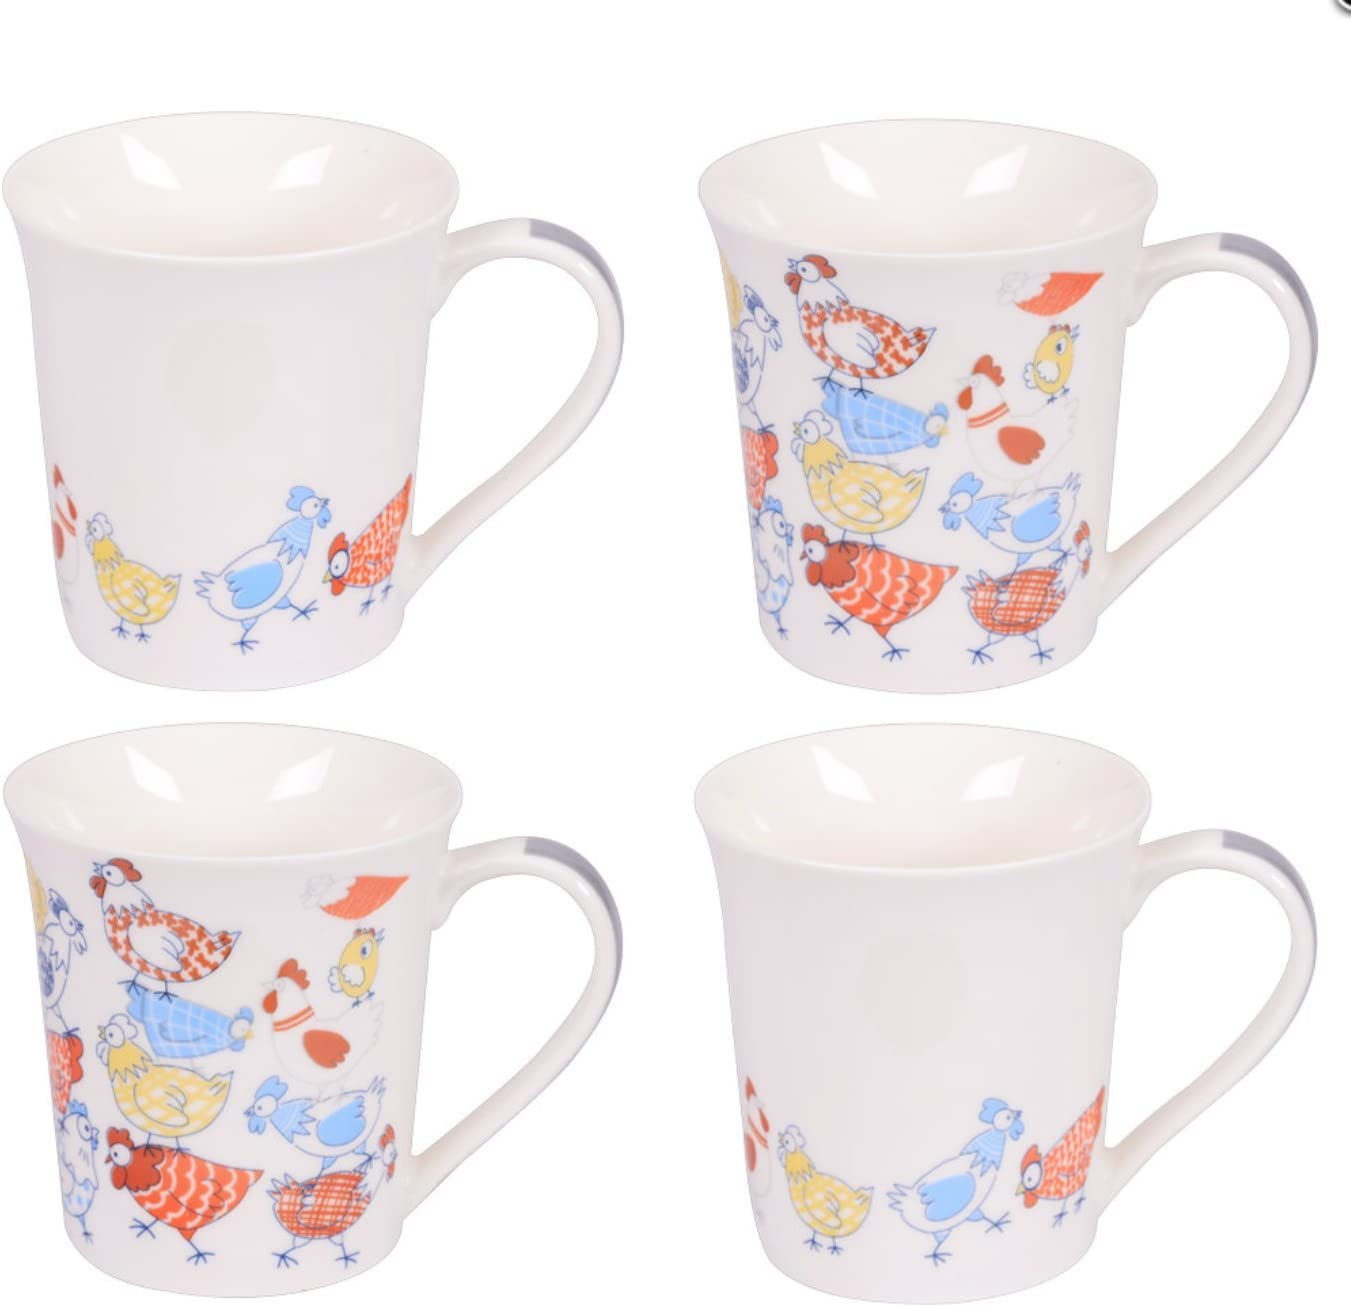 Table Passion New sales 231119 Set of 4 Year-end annual account Hen Mugs 12 - oz in Box Gift